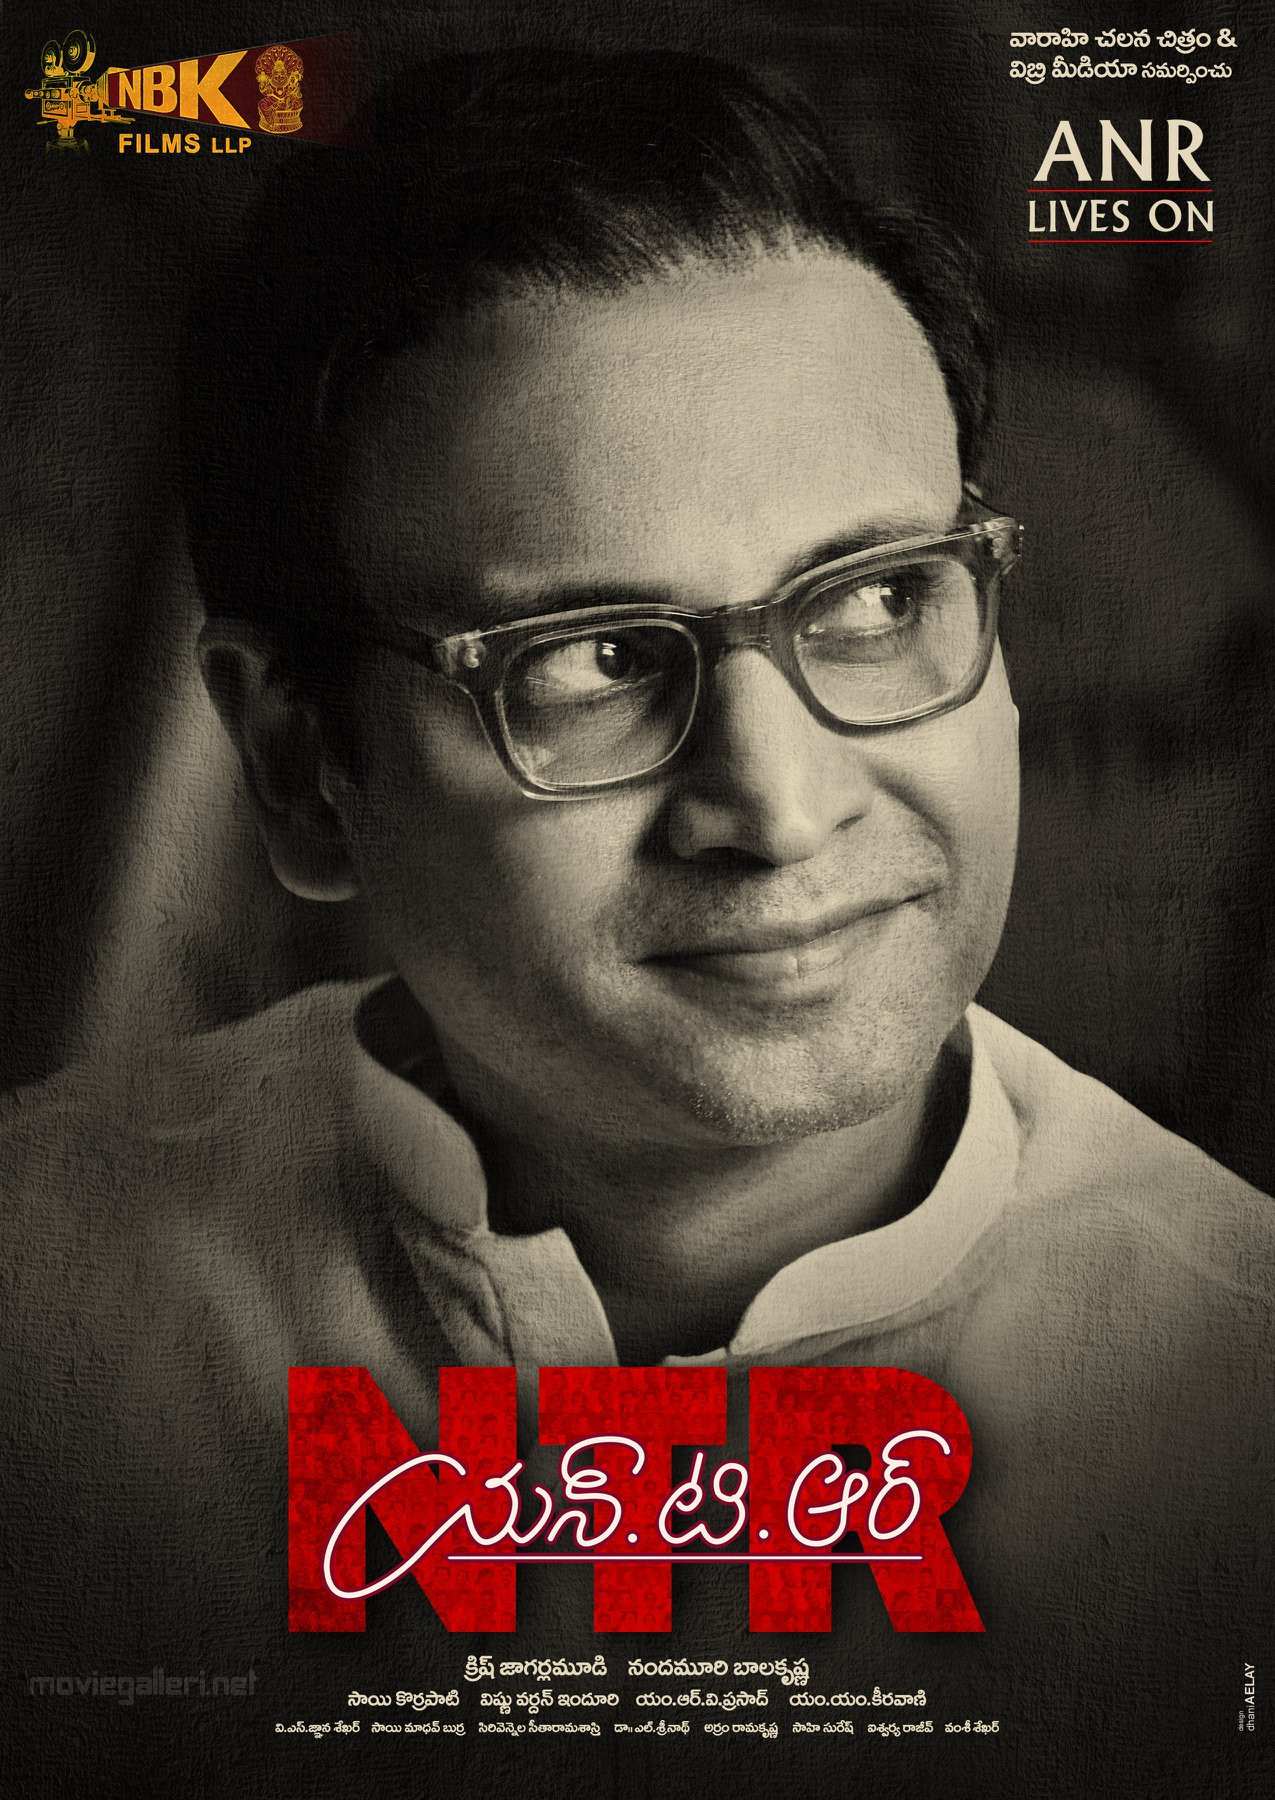 Actor Sumanth as ANR in NTR Biopic Poster HD